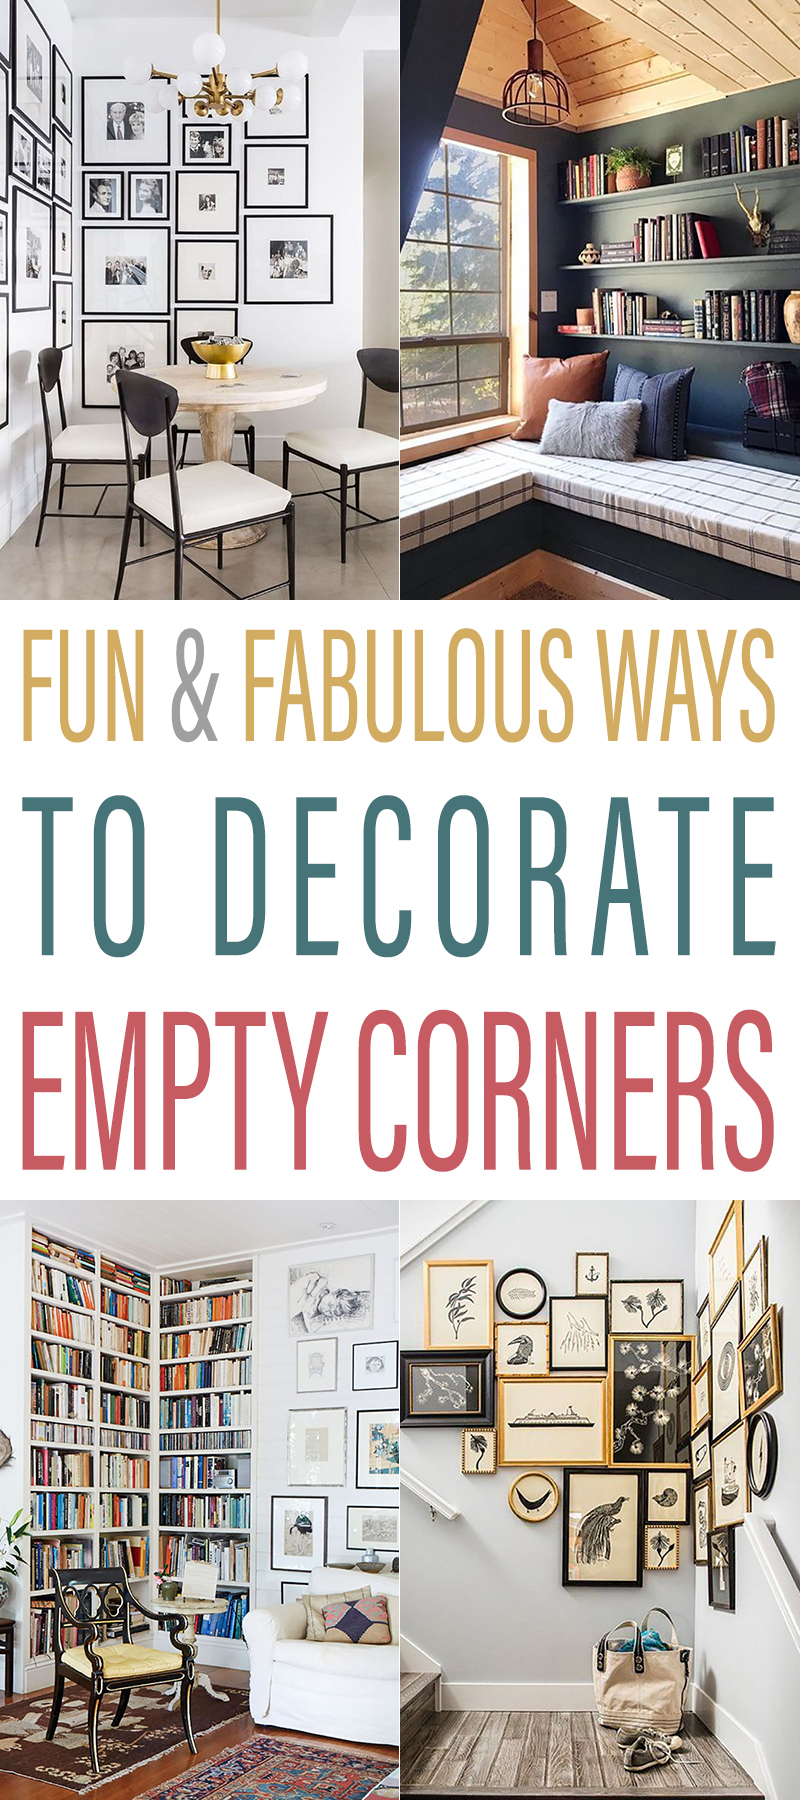 Fun and Fabulous Ways To Decorate Empty Corners